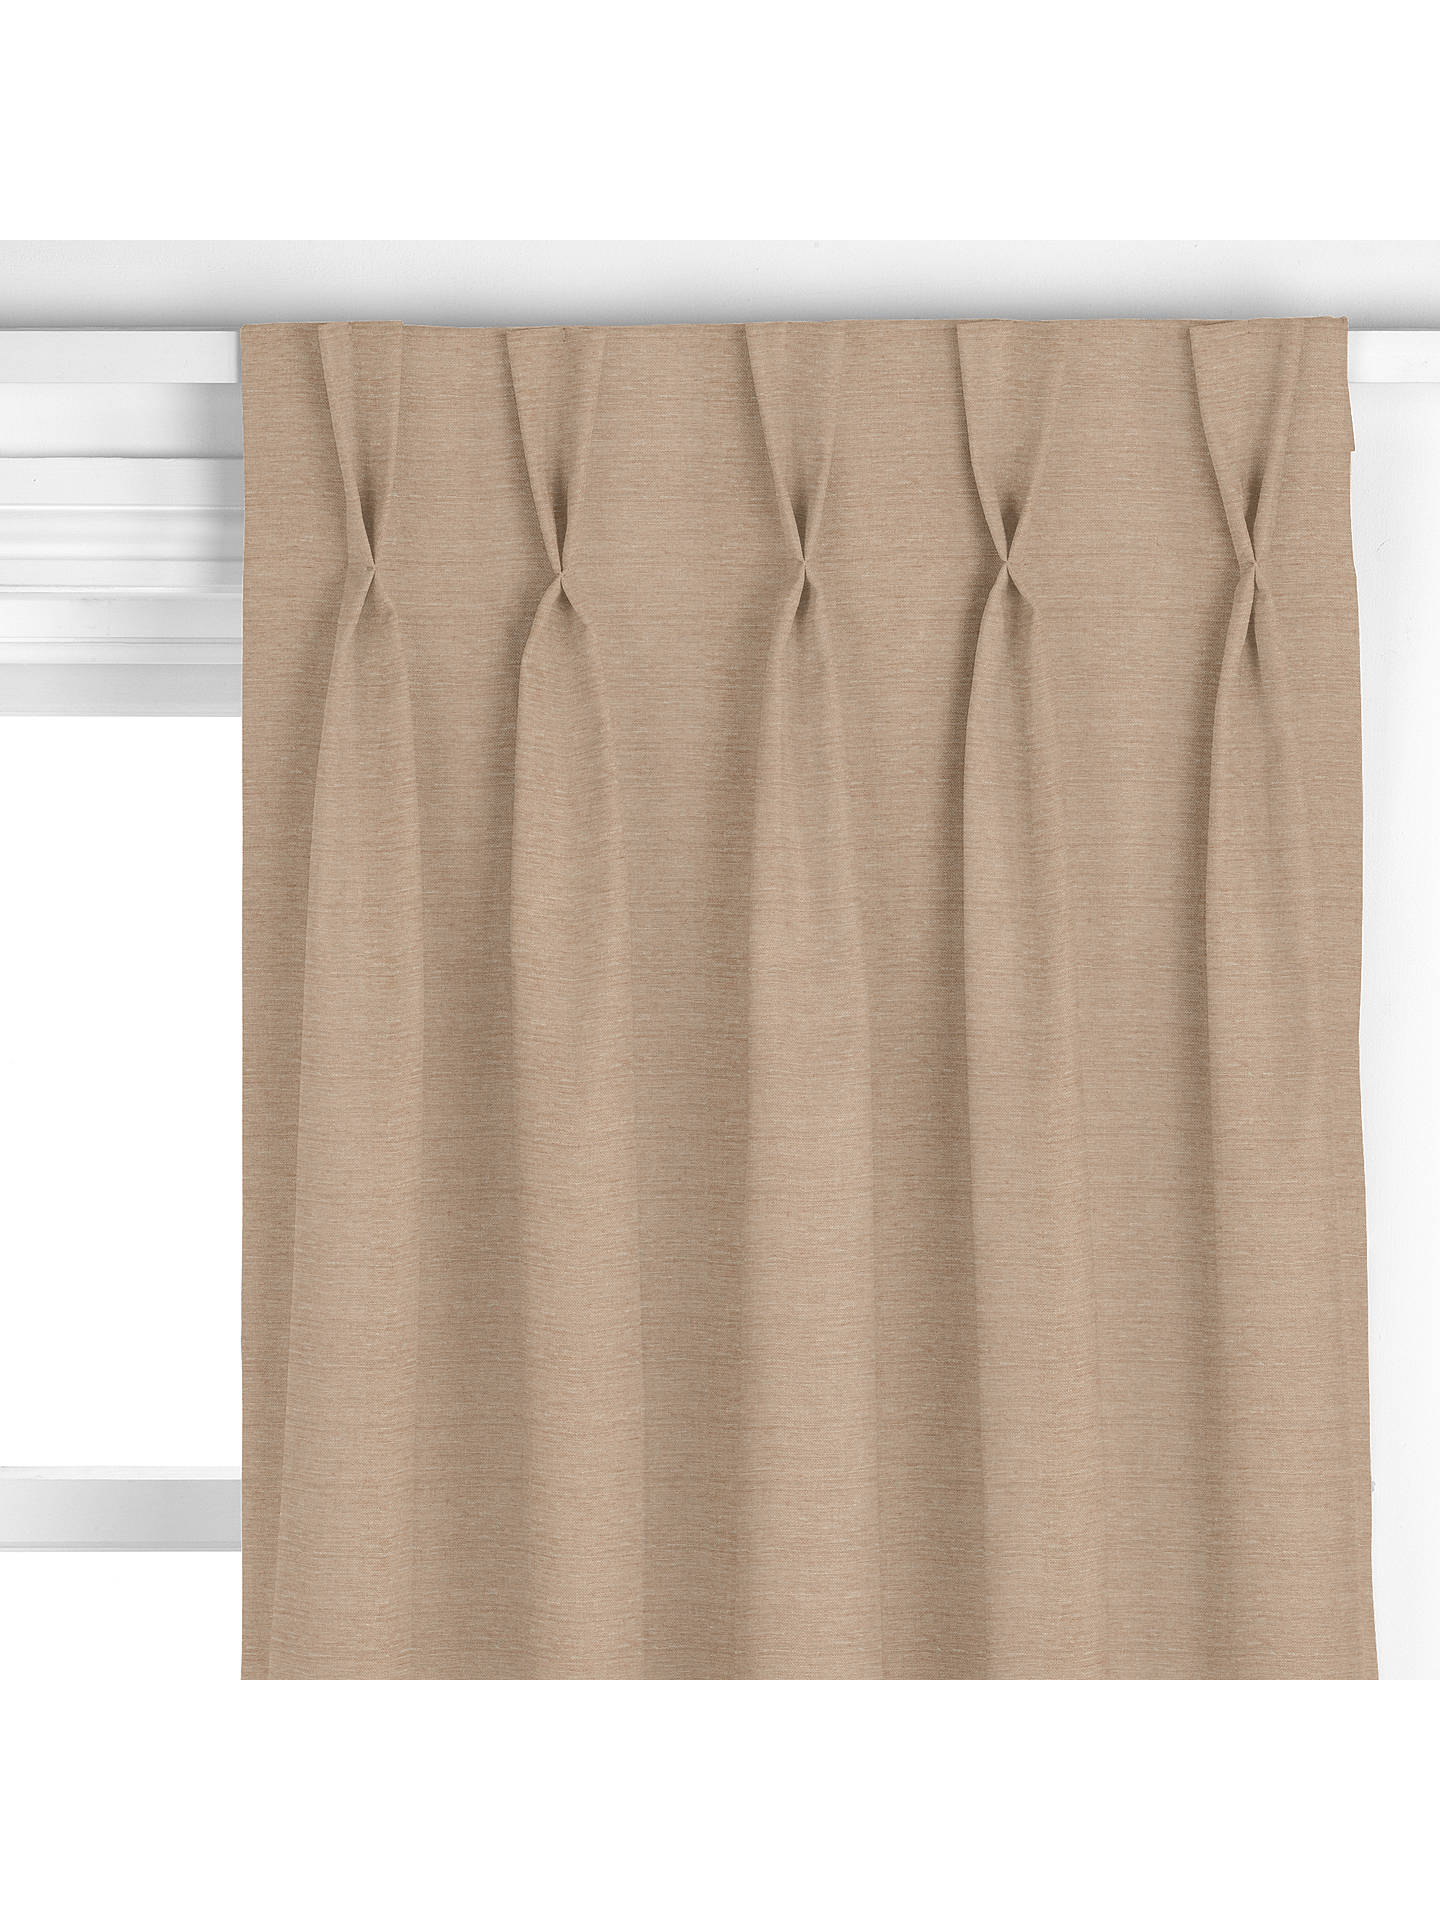 BuyJohn Lewis & Partners Edessa Curtain, Mocha Online at johnlewis.com